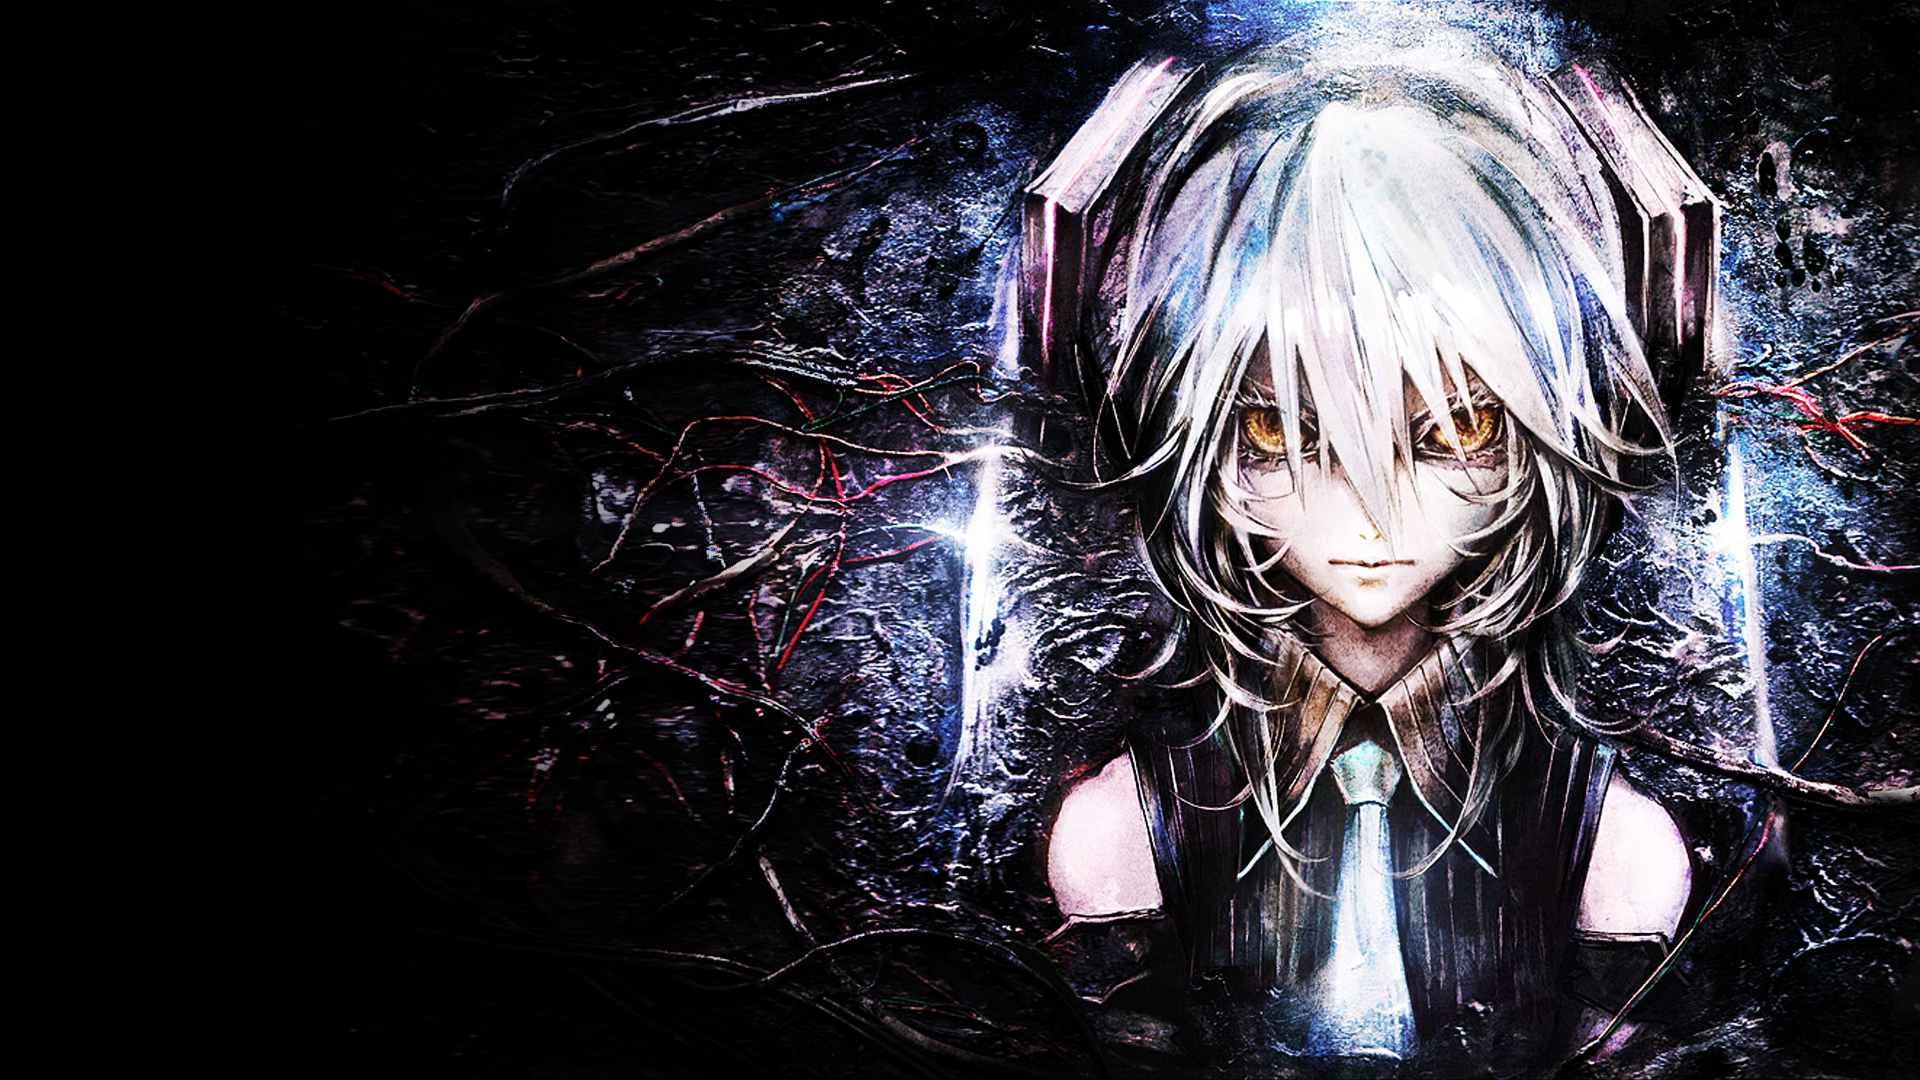 47 cool dark anime wallpapers on wallpapersafari - Wallpaper computer anime ...